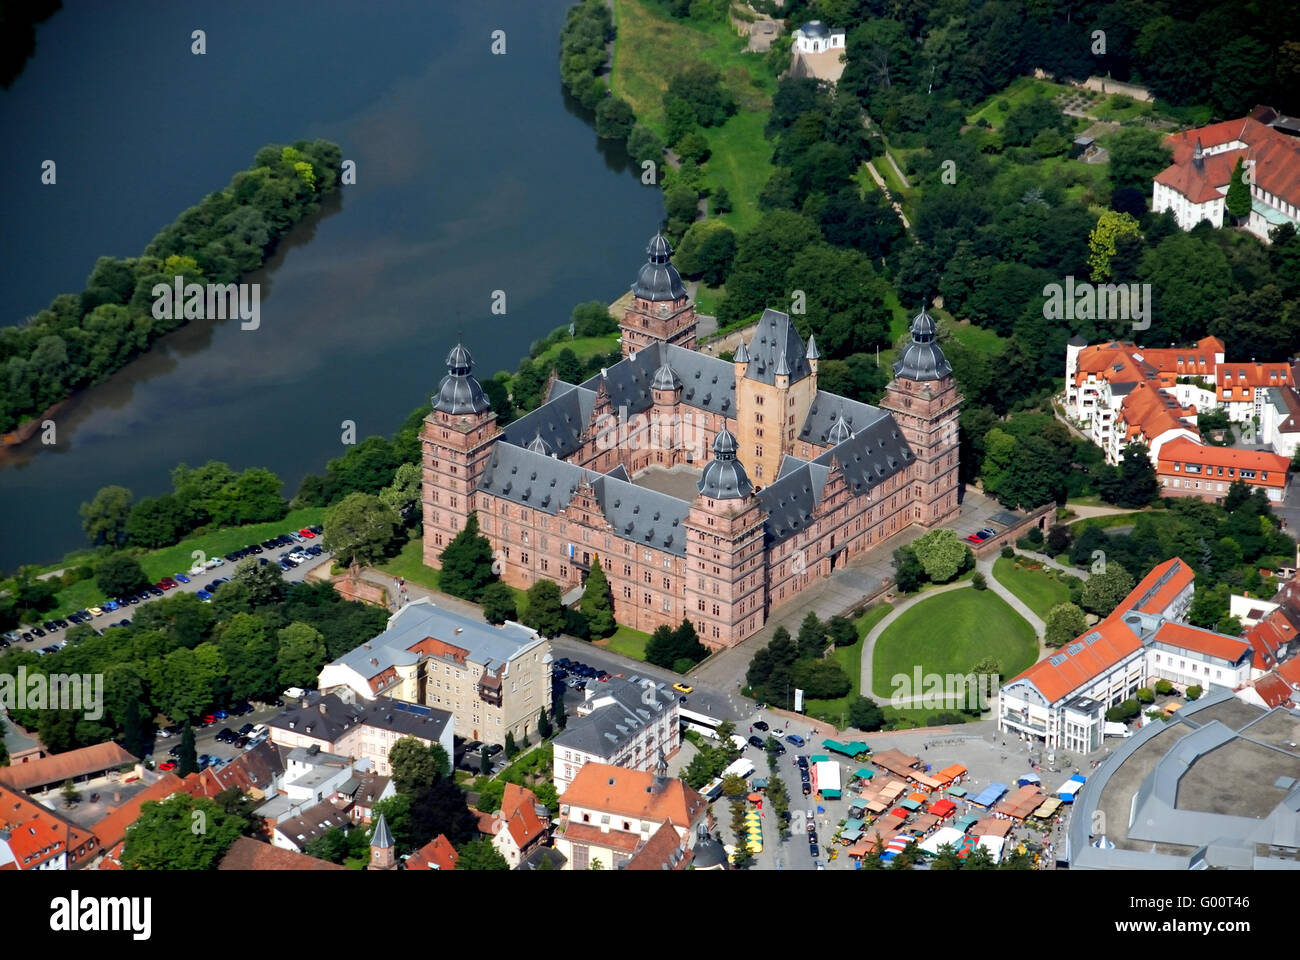 johannesburg castle in aschaffenburg germany stock photo. Black Bedroom Furniture Sets. Home Design Ideas